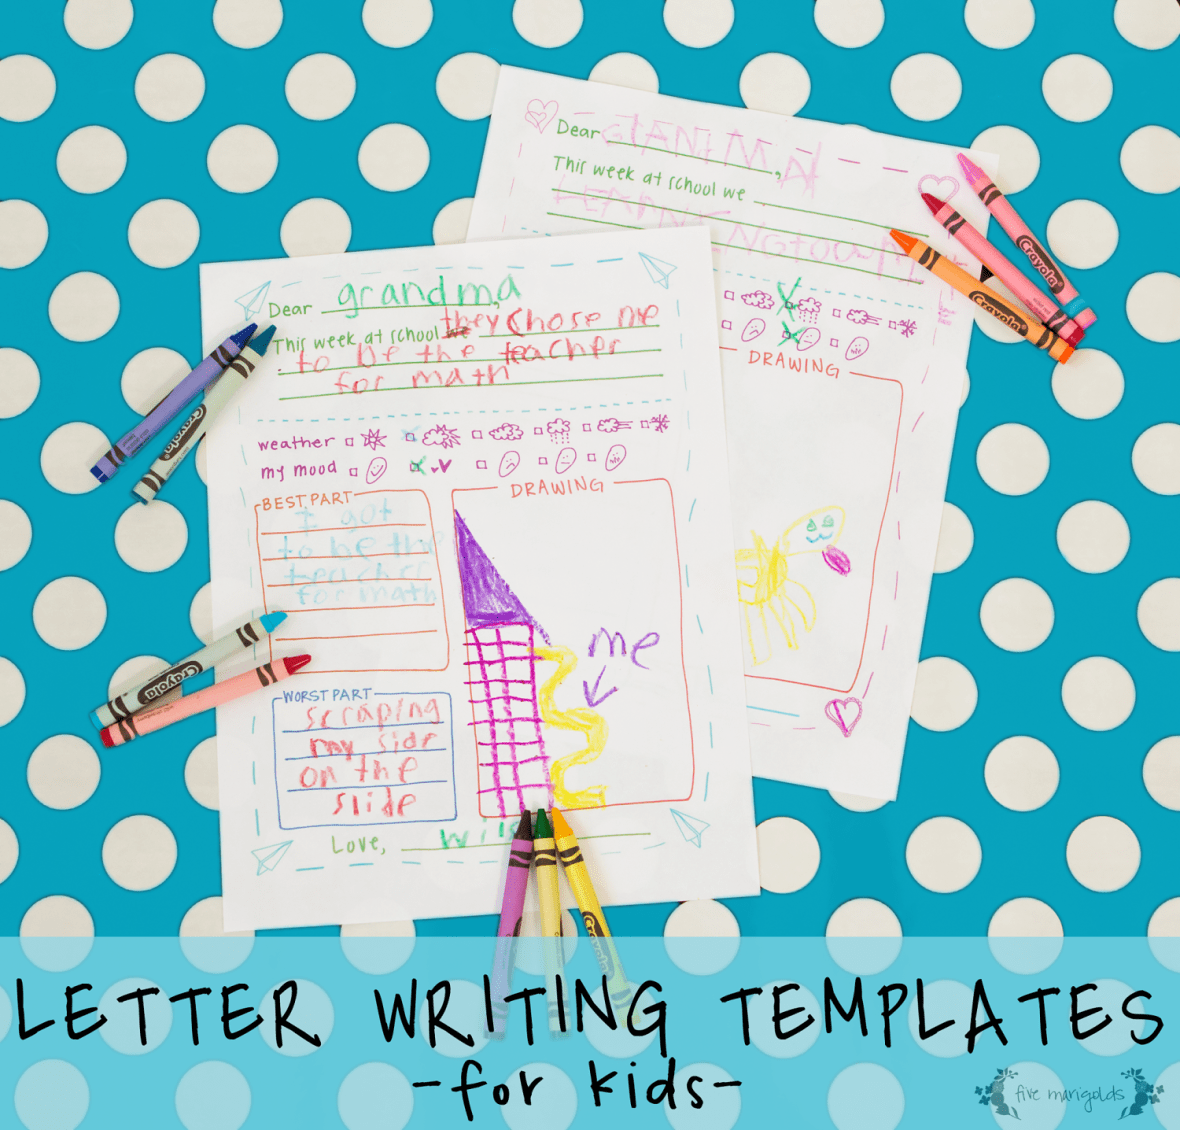 Letter to Grandma Printable Templates | Five Marigolds